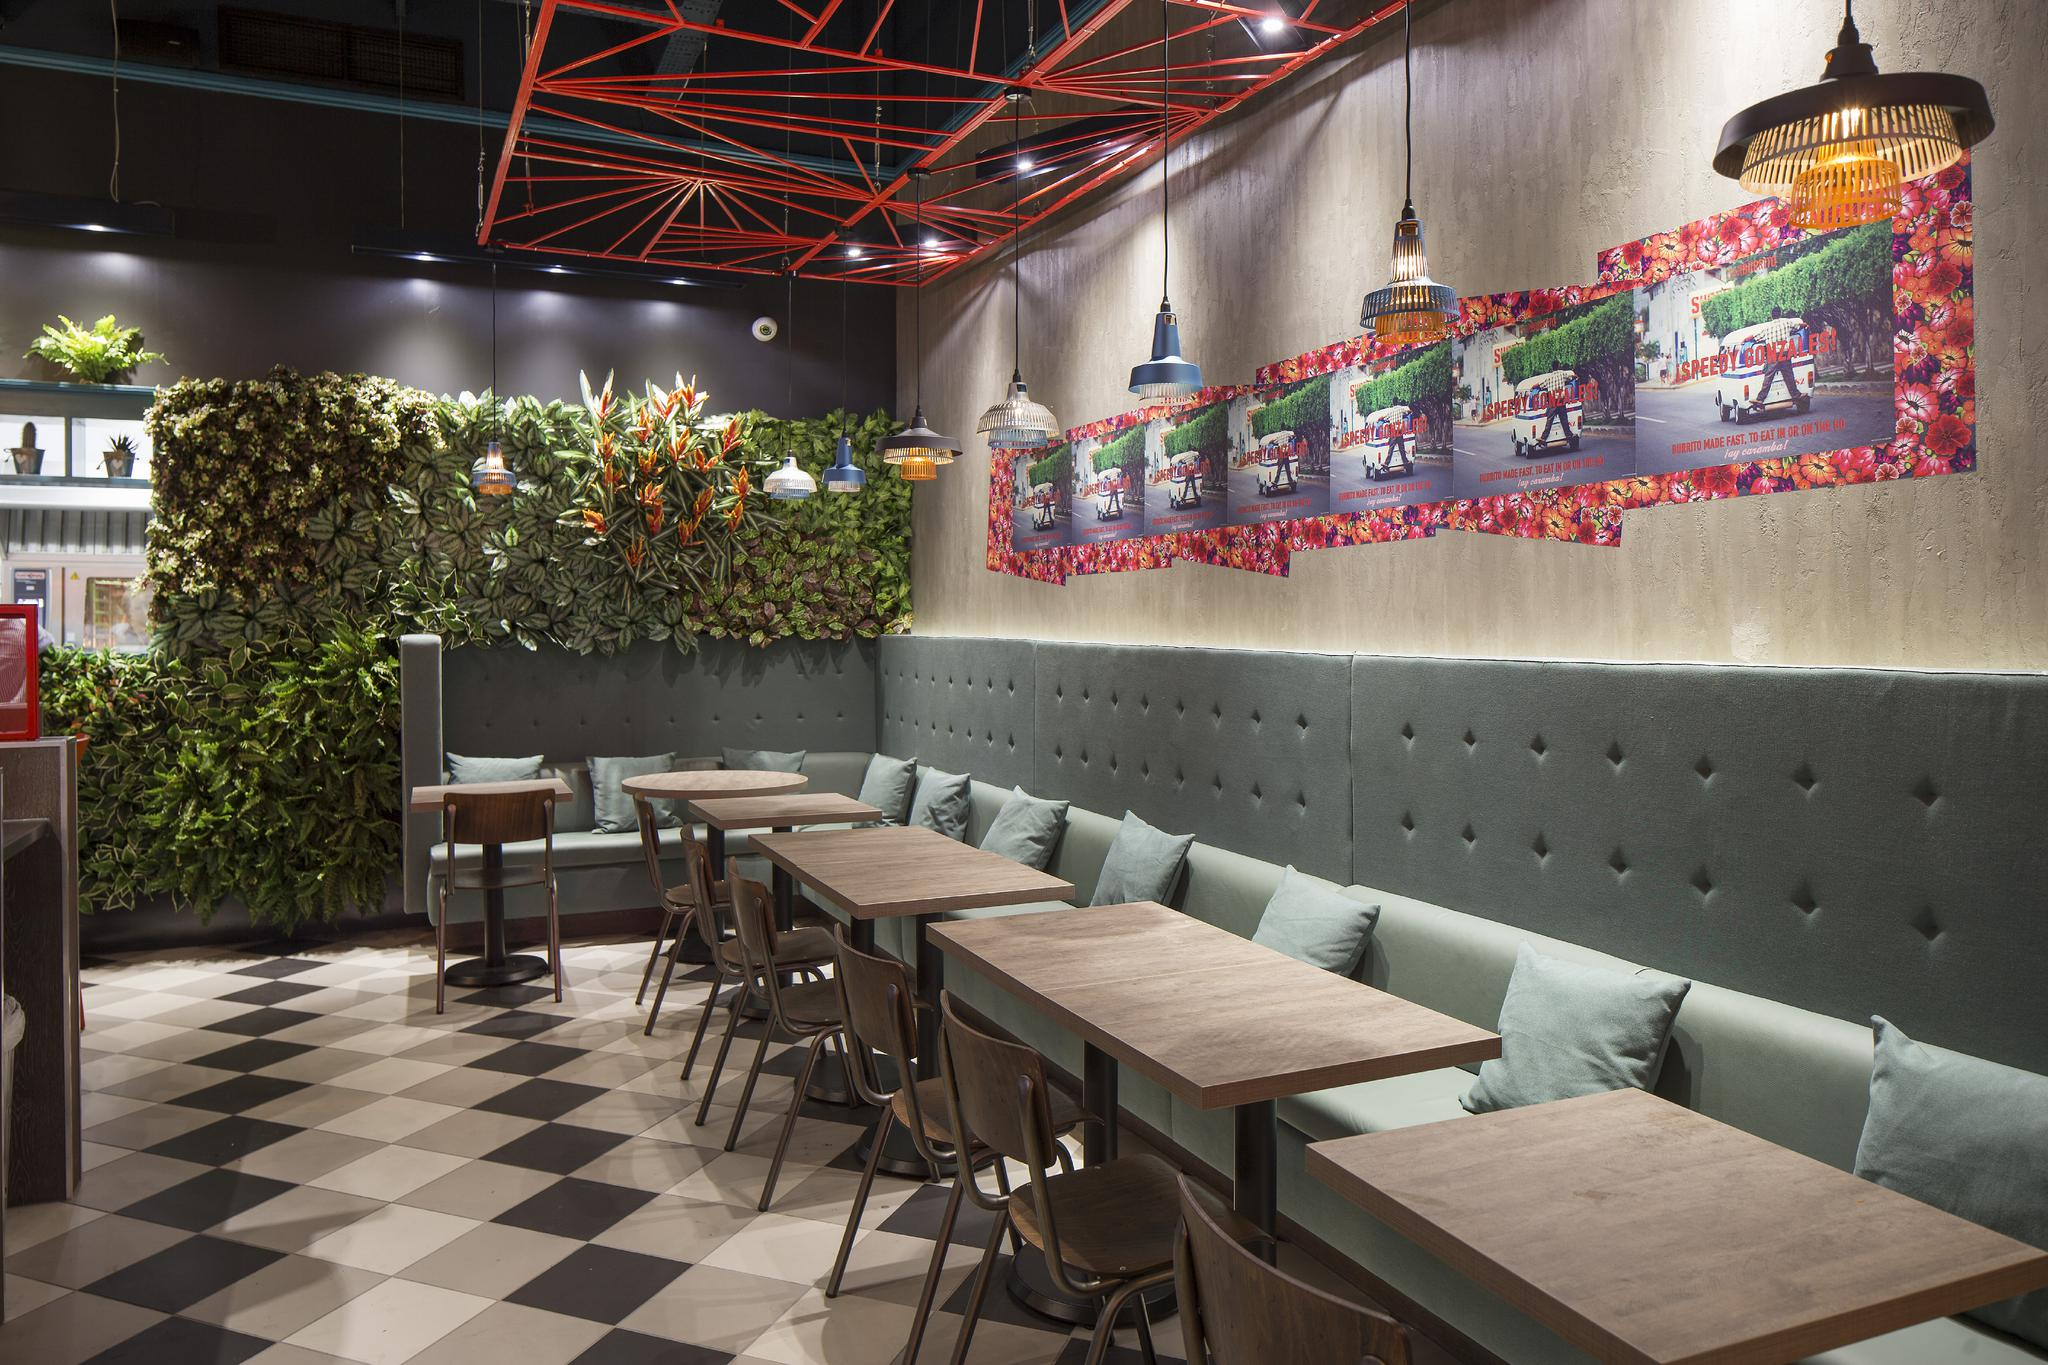 Oasis Interior Landscaping Northern Restaurant Bar 2017 Serving Northern Hospitality